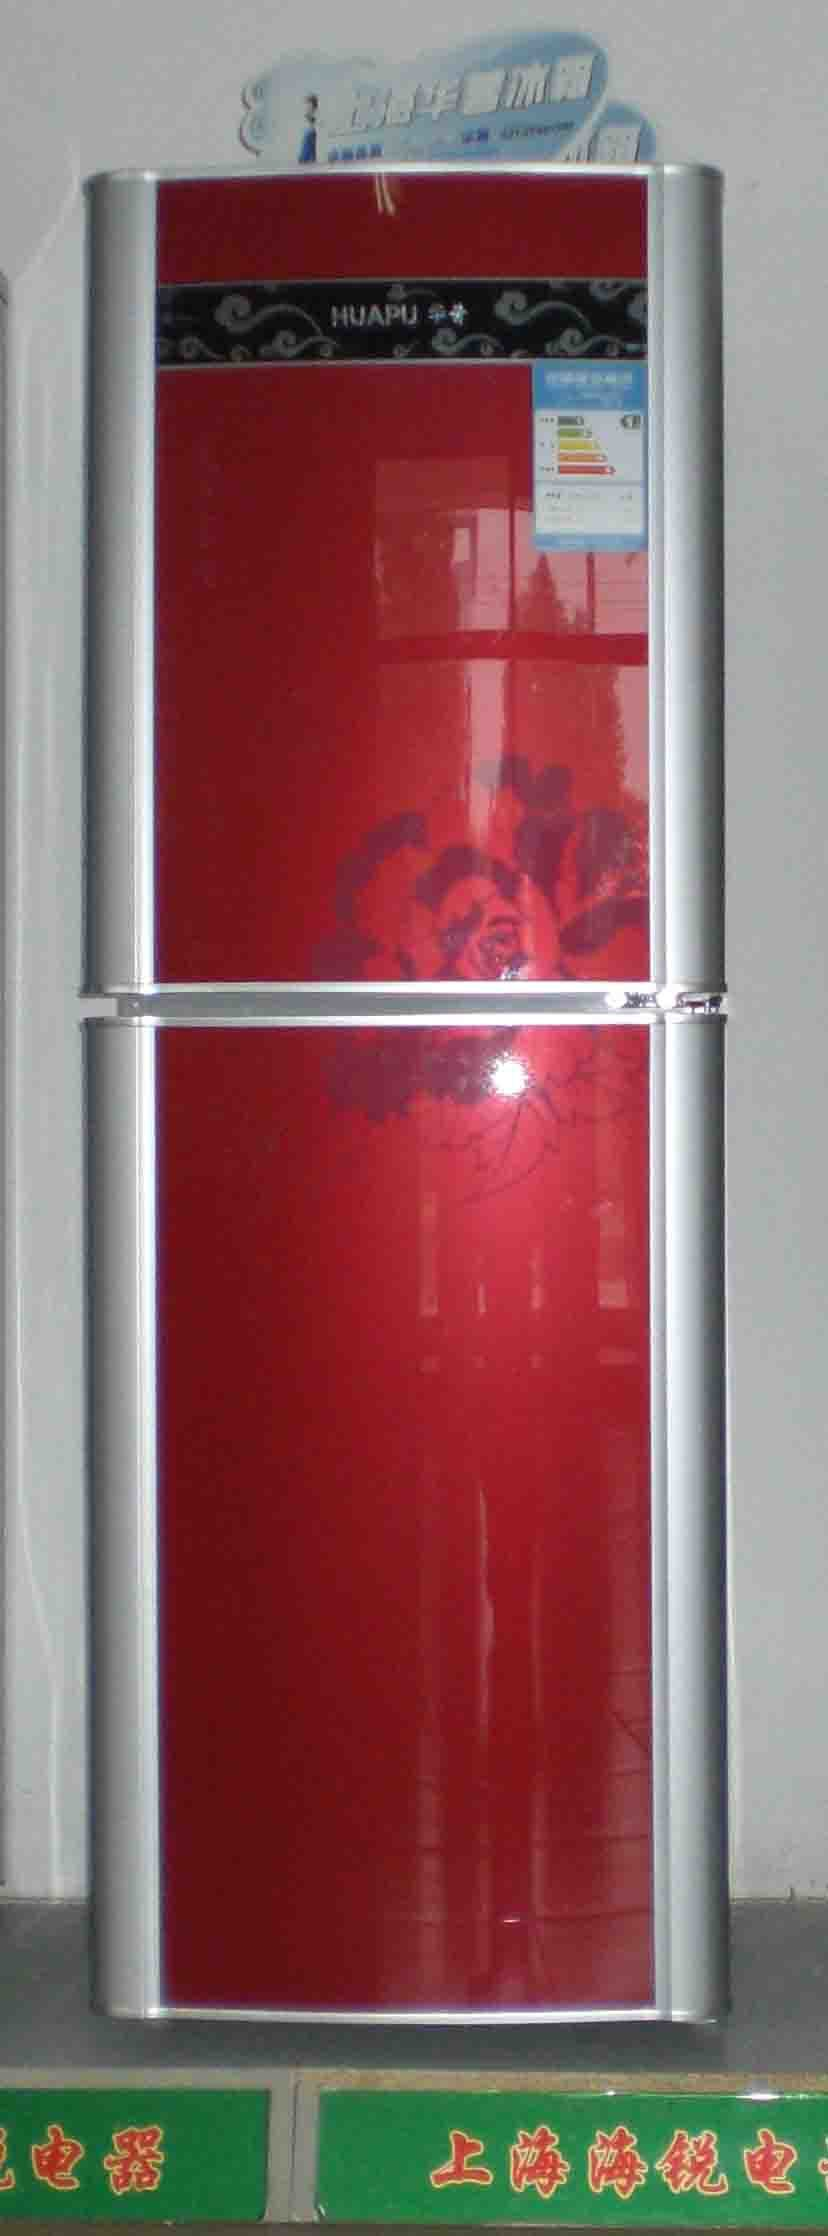 Door Energy Saver : China l glass doors refrigerators energy saving